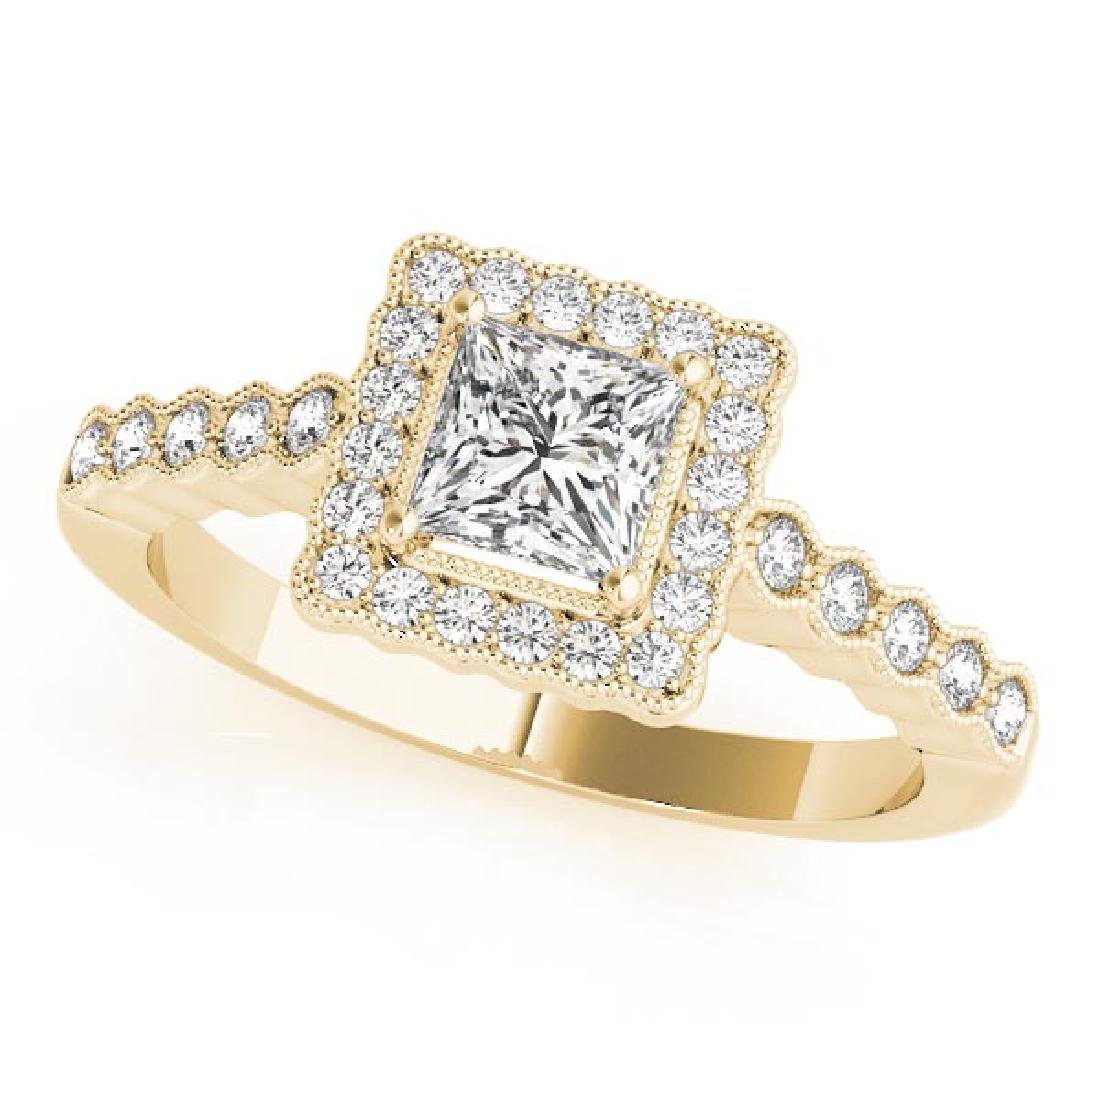 CERTIFIED 18K YELLOW GOLD 0.66 CT G-H/VS-SI1 DIAMOND HA